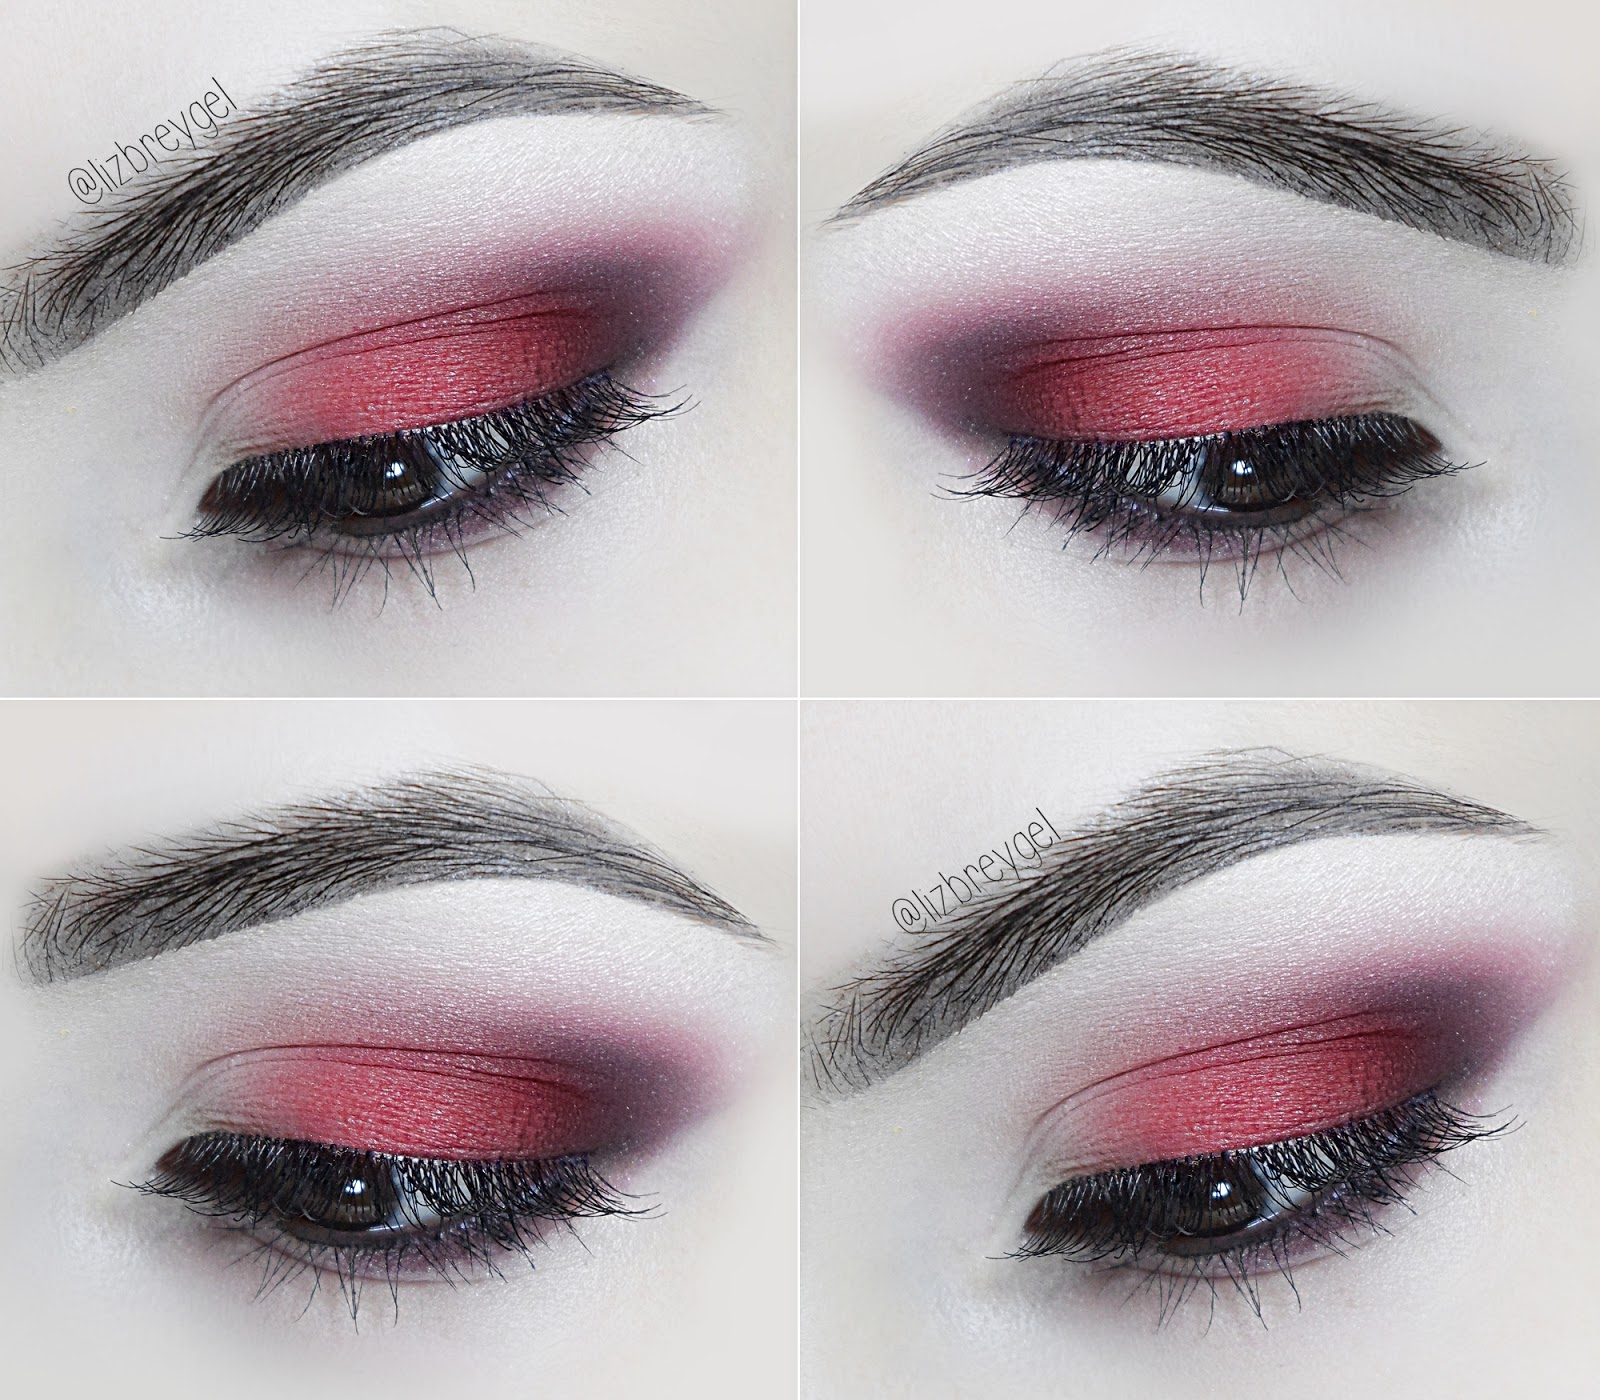 liz breygel Makeup step by step Tutorial January Birthstone red smoky eye gothic goth eye